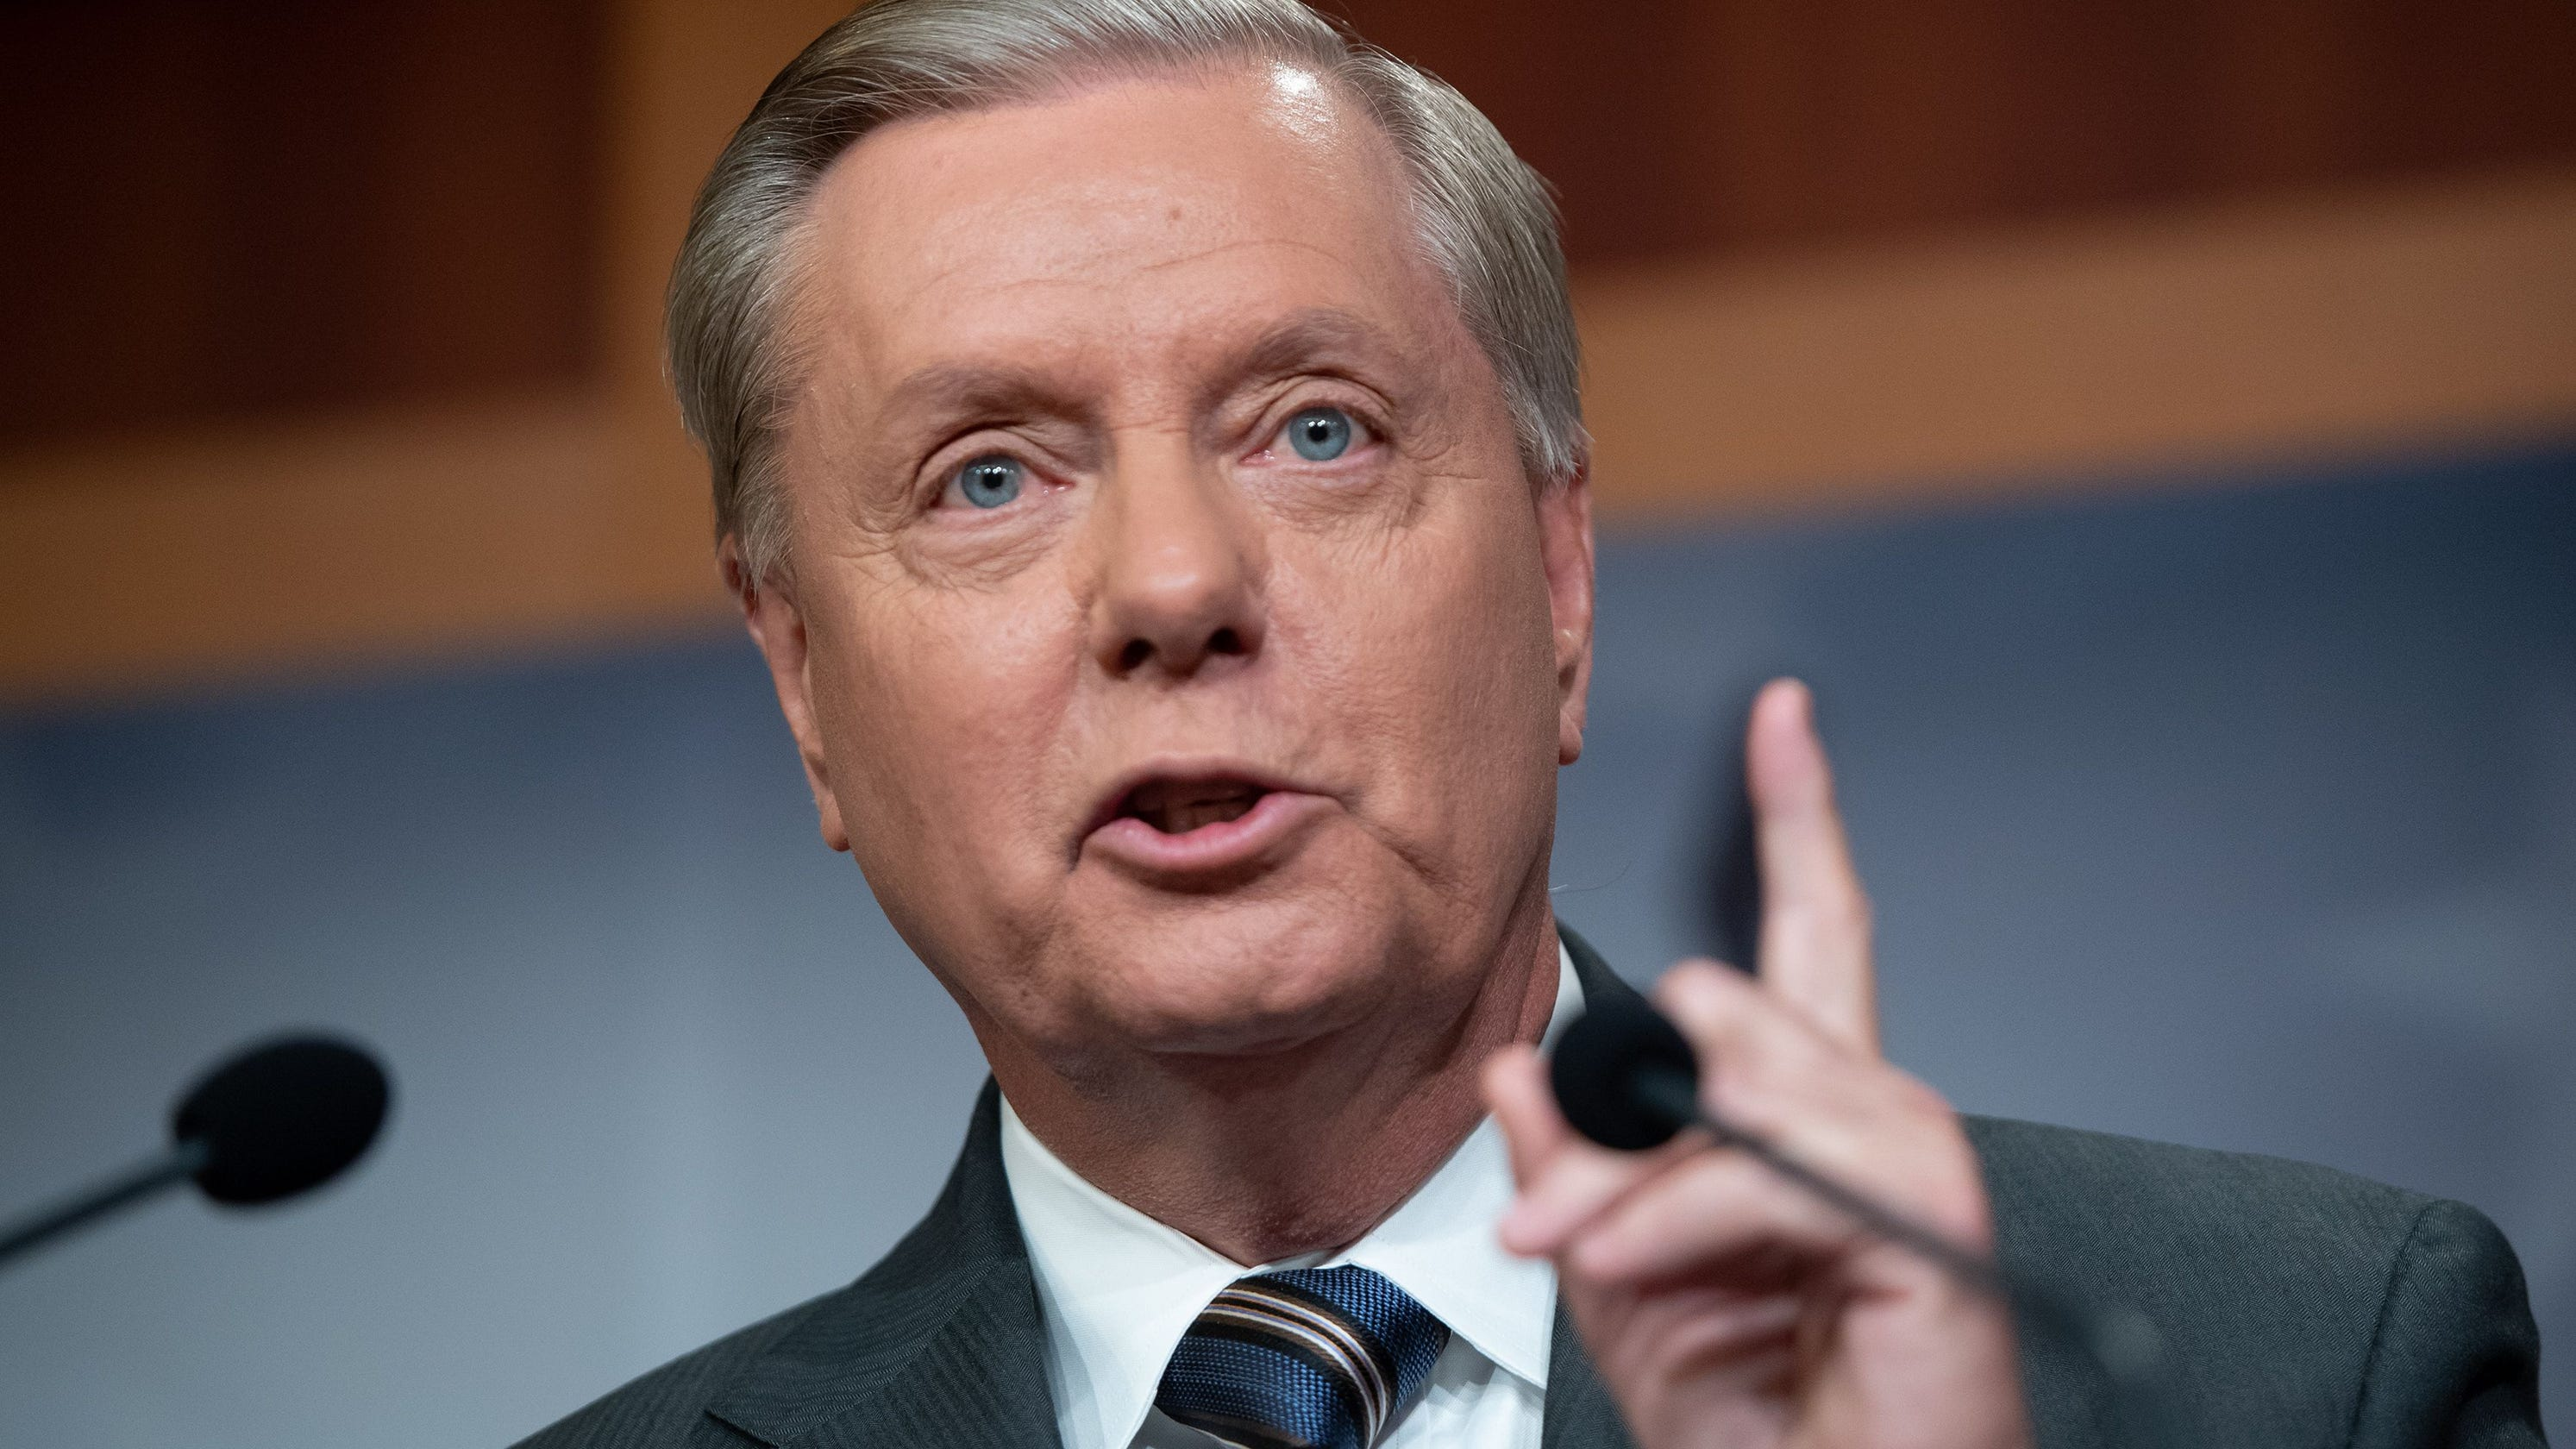 'Trump is thinking outside the box': Graham now 'impressed' with White House handling of Syria